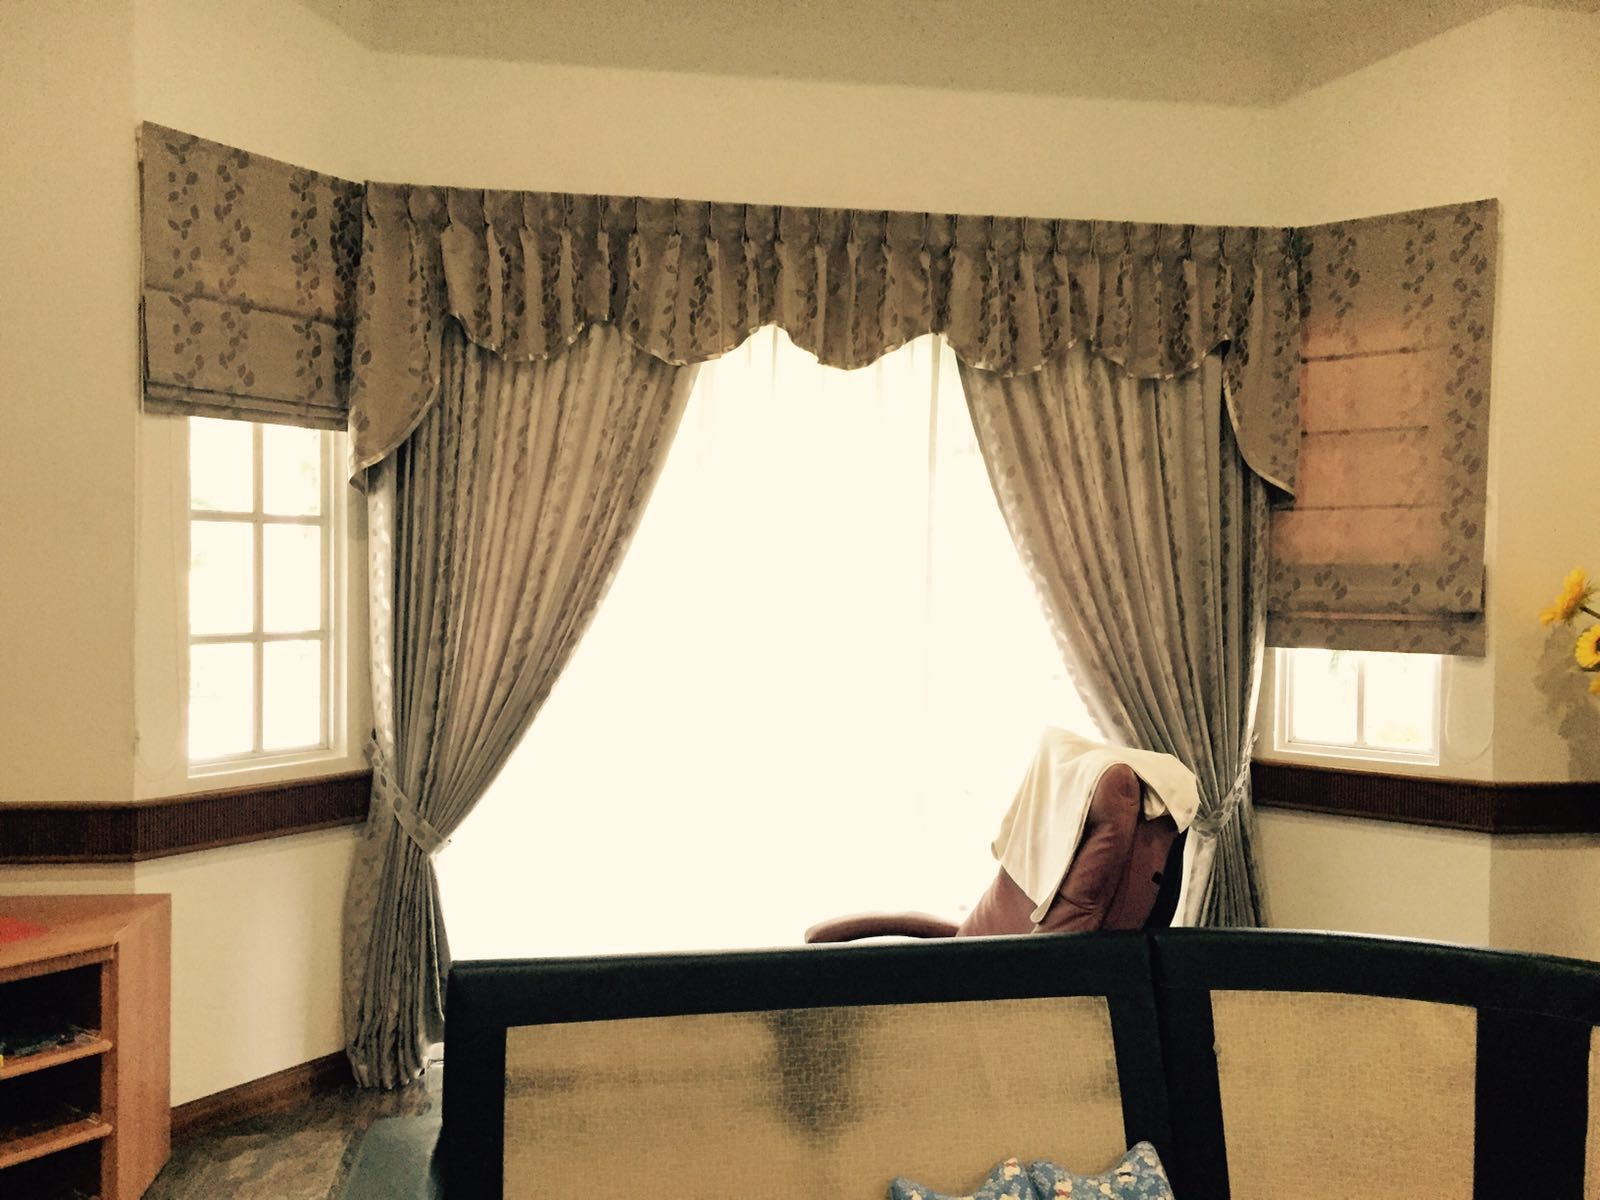 swag blockout itm curtains sheer blackout coffee fabric drapes pelmet net mocha brown valance curtain